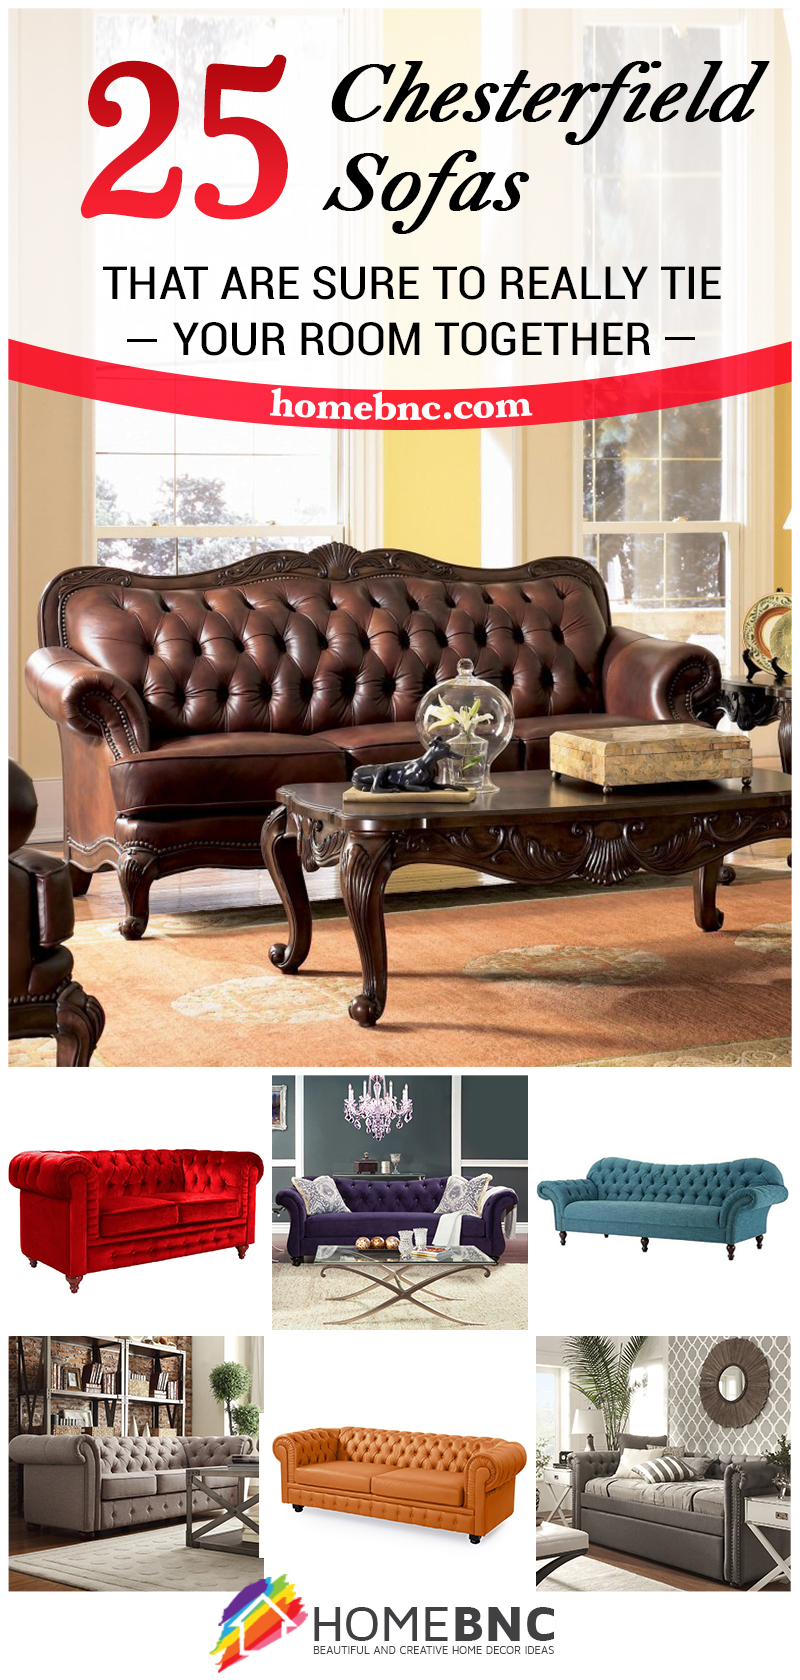 best-chesterfield-sofa-ideas-pinterest-share-homebnc